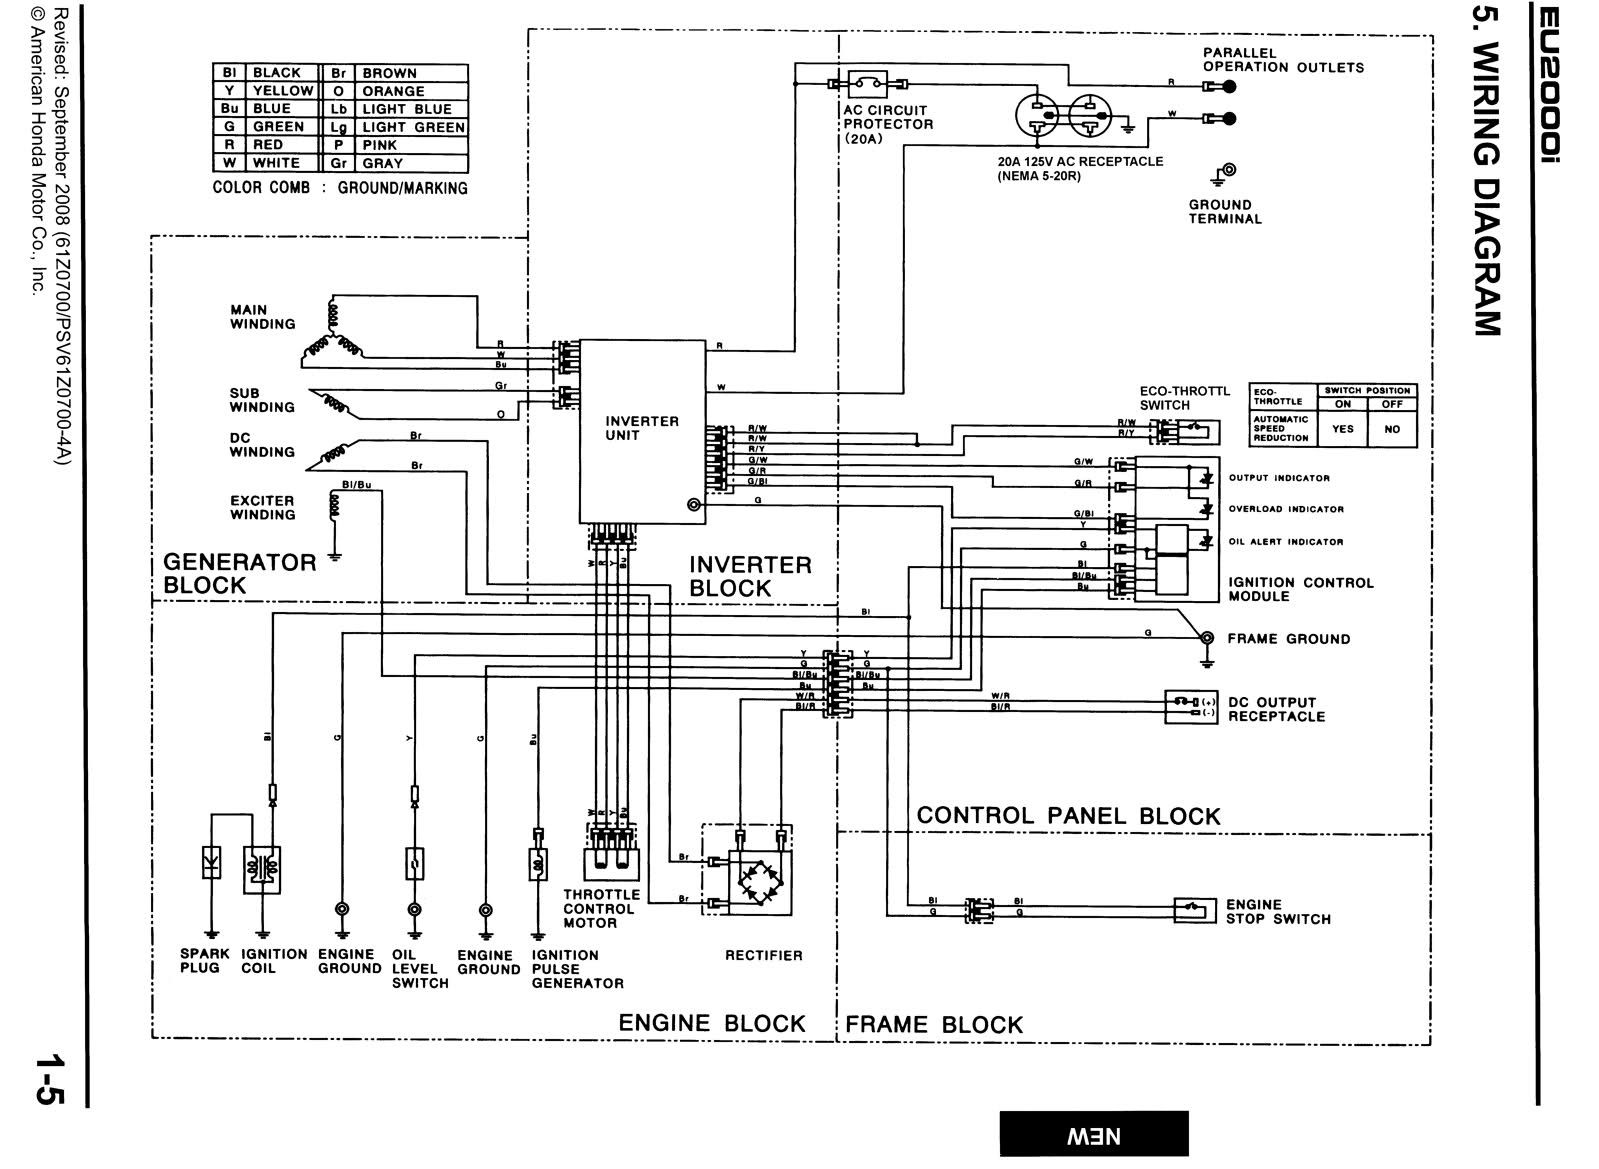 hight resolution of honda generator schematics wiring diagram mega honda generator schematics